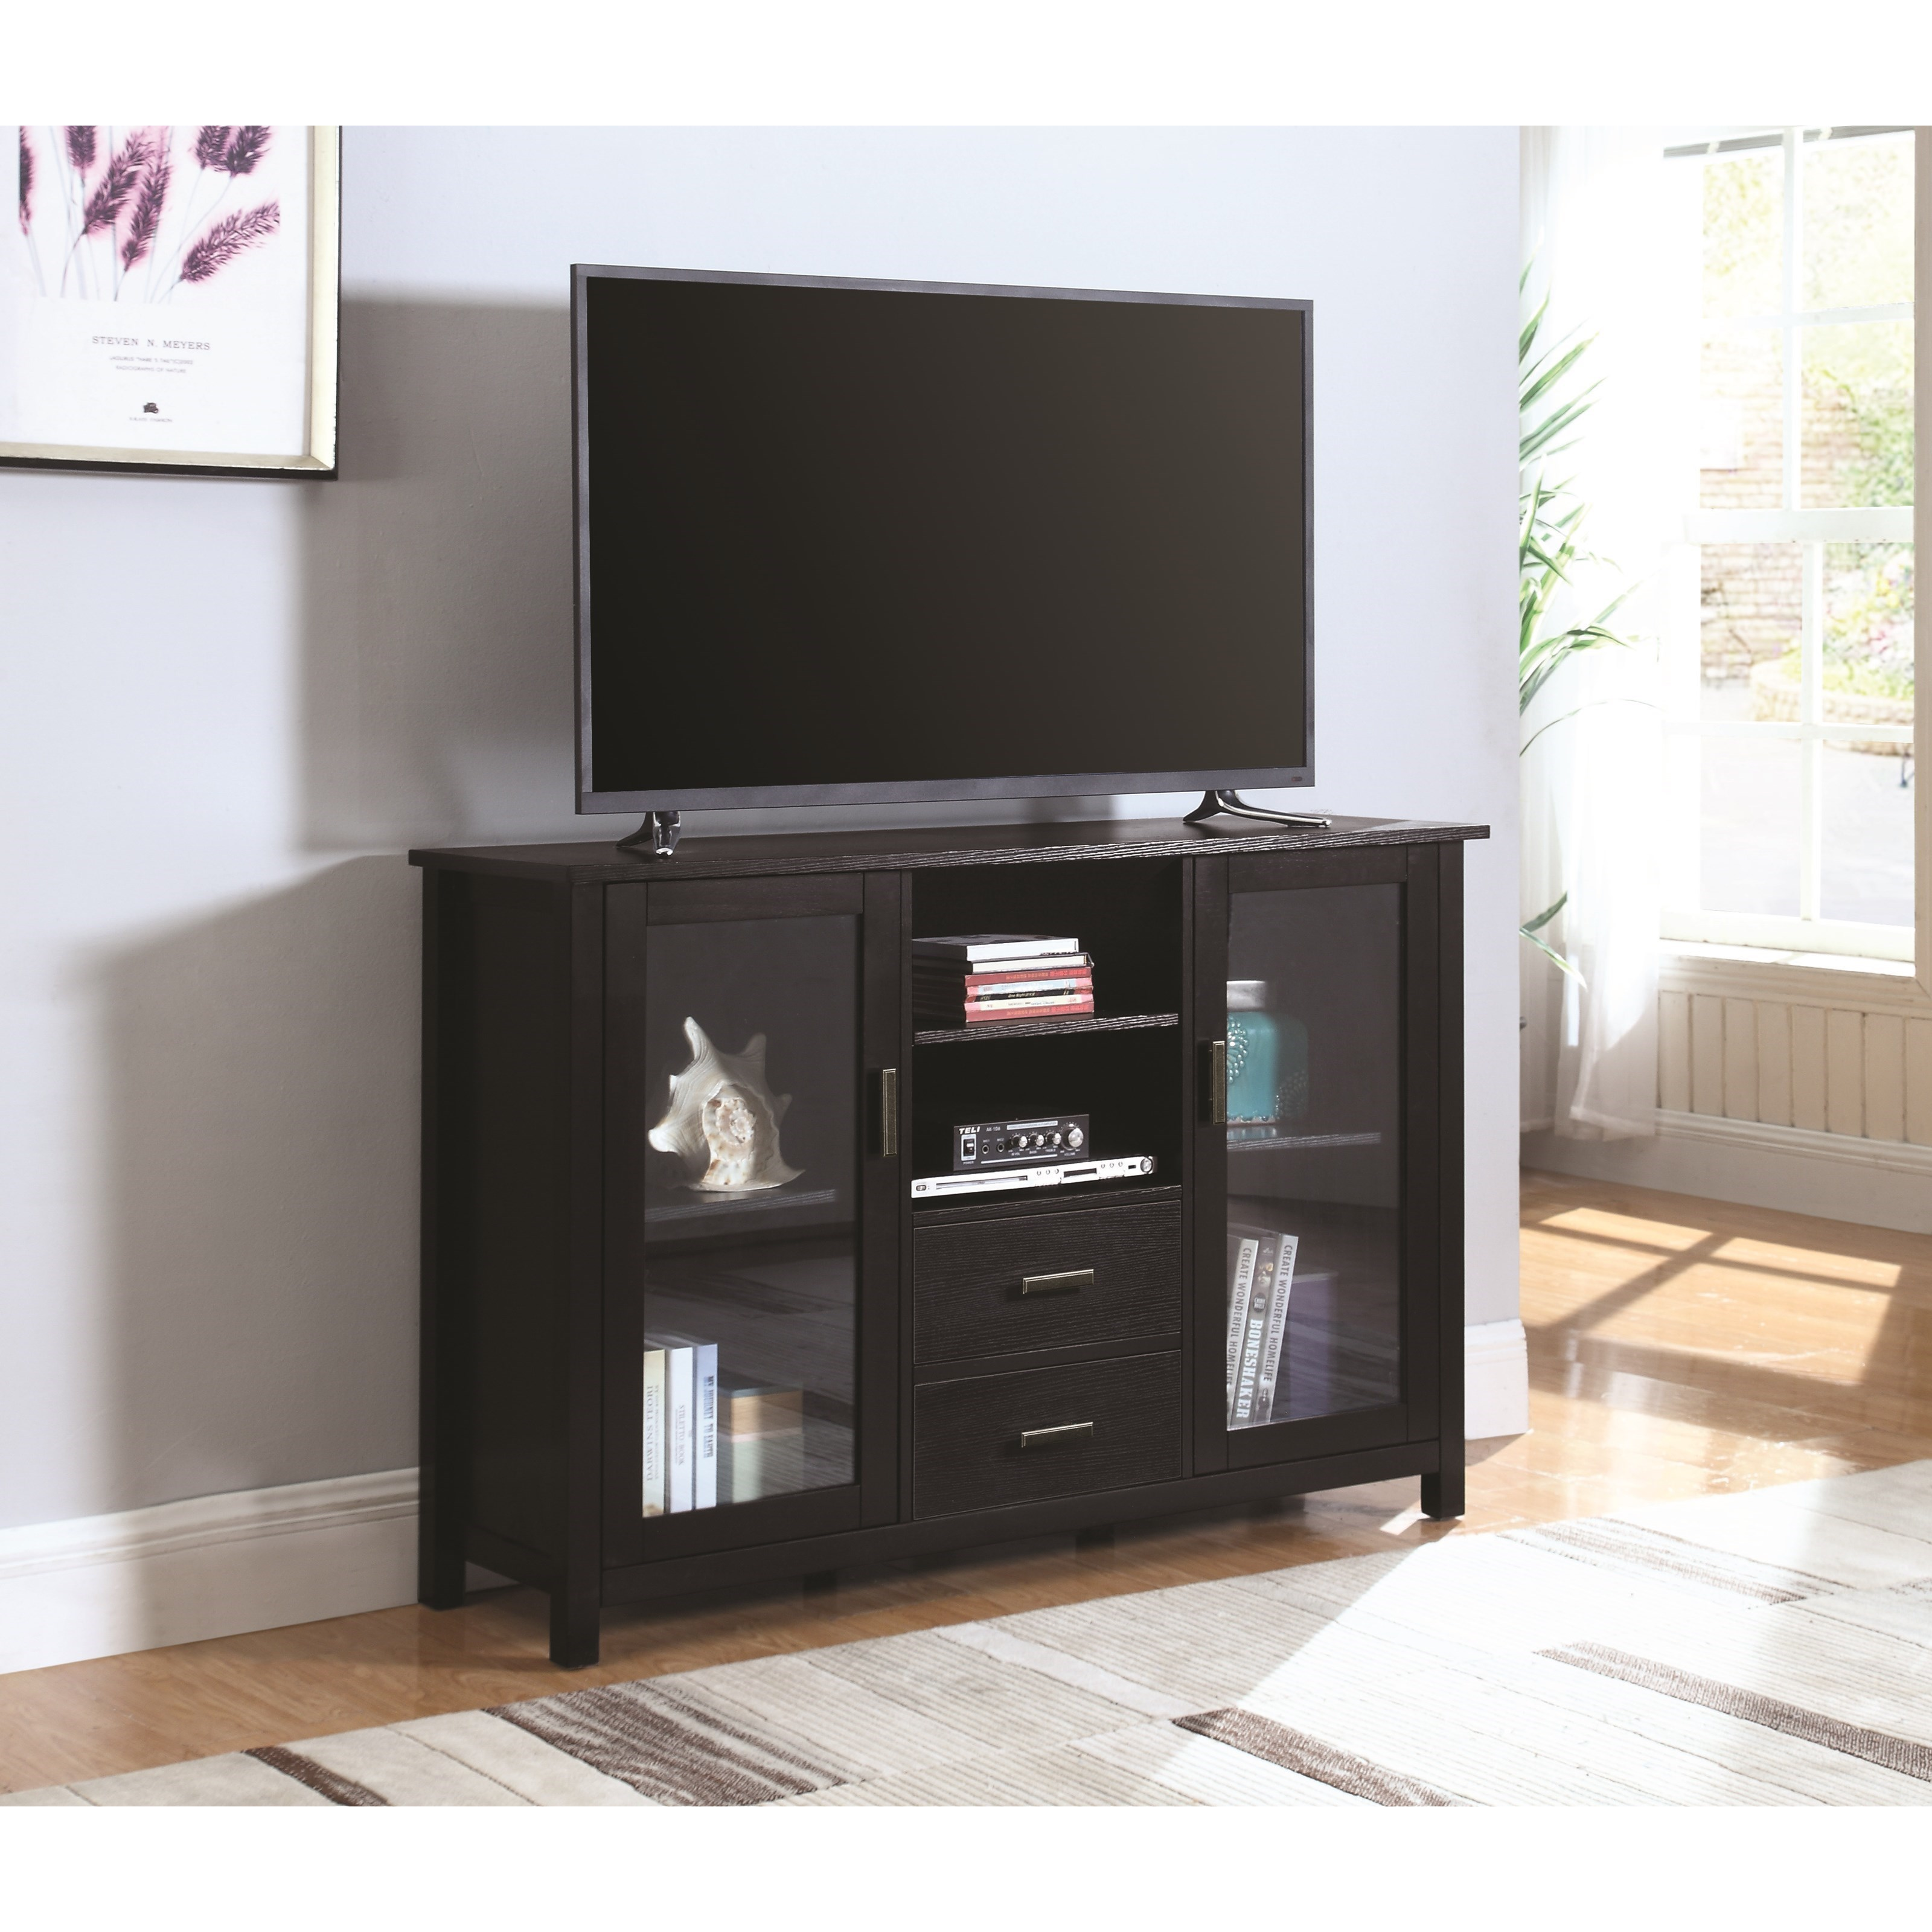 701045 trista black transitional tv stand with glass doors